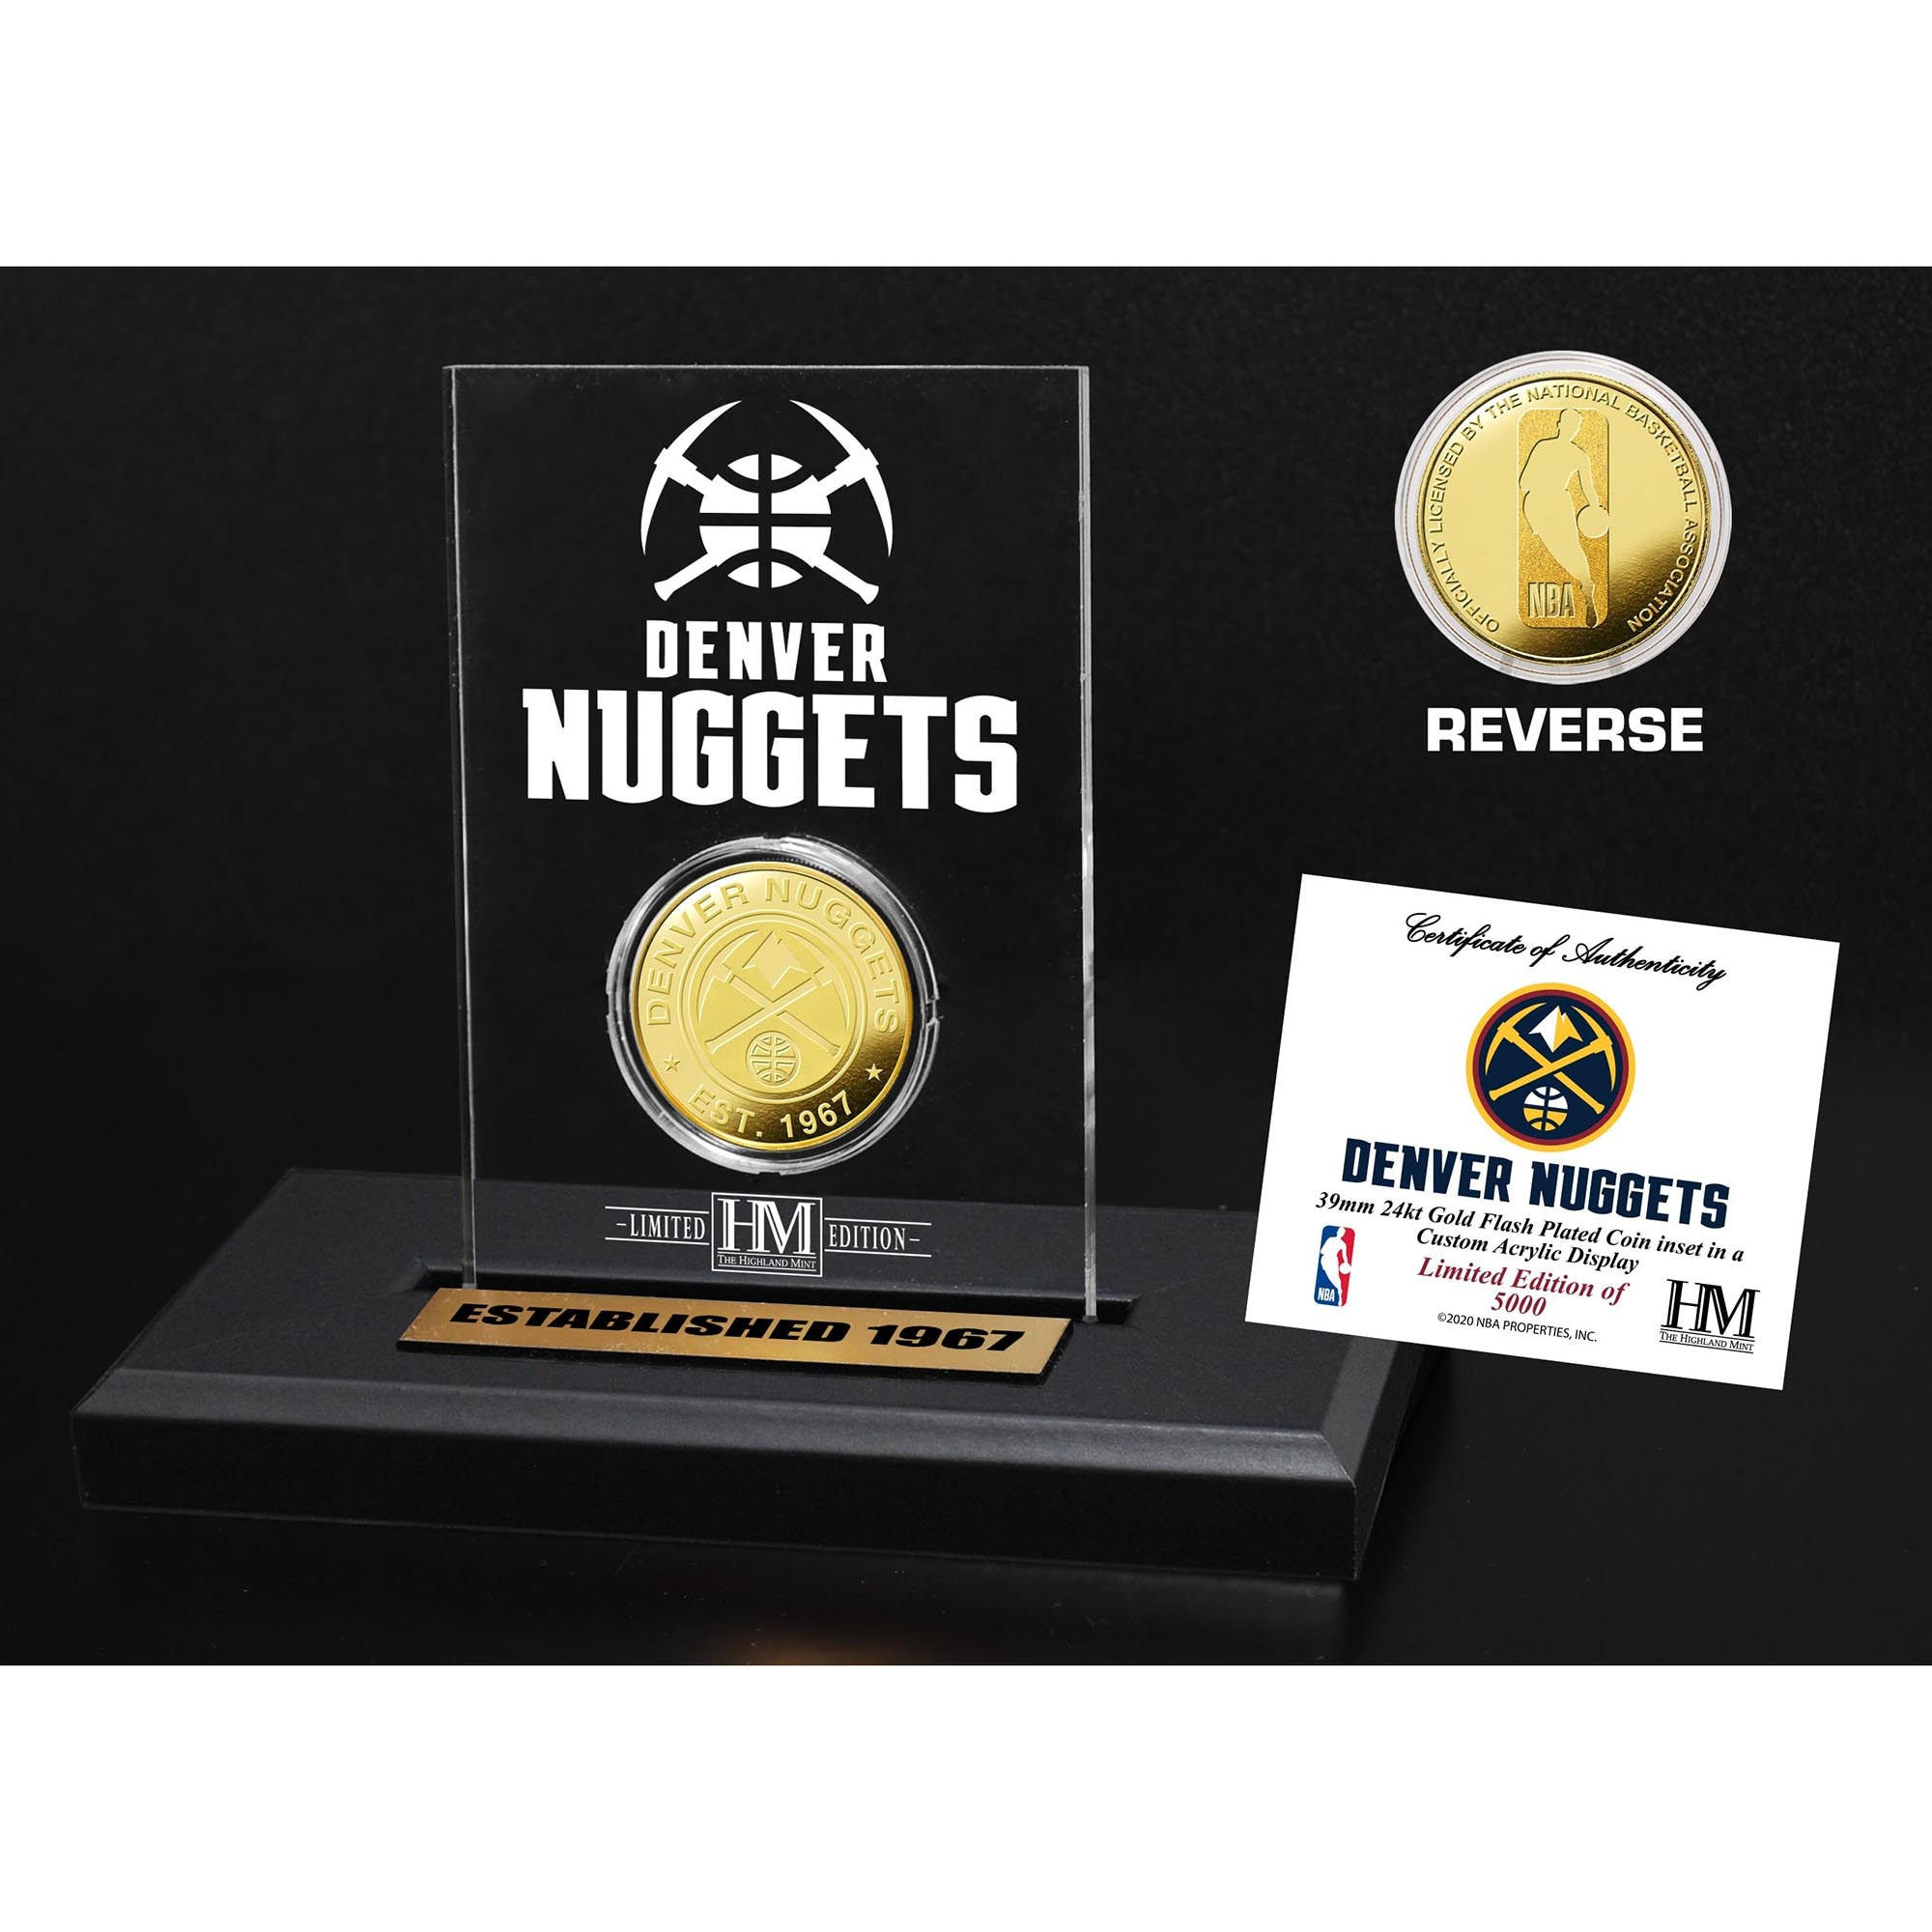 Denver Nuggets Highland Mint Gold Coin Acrylic Desk Top Display